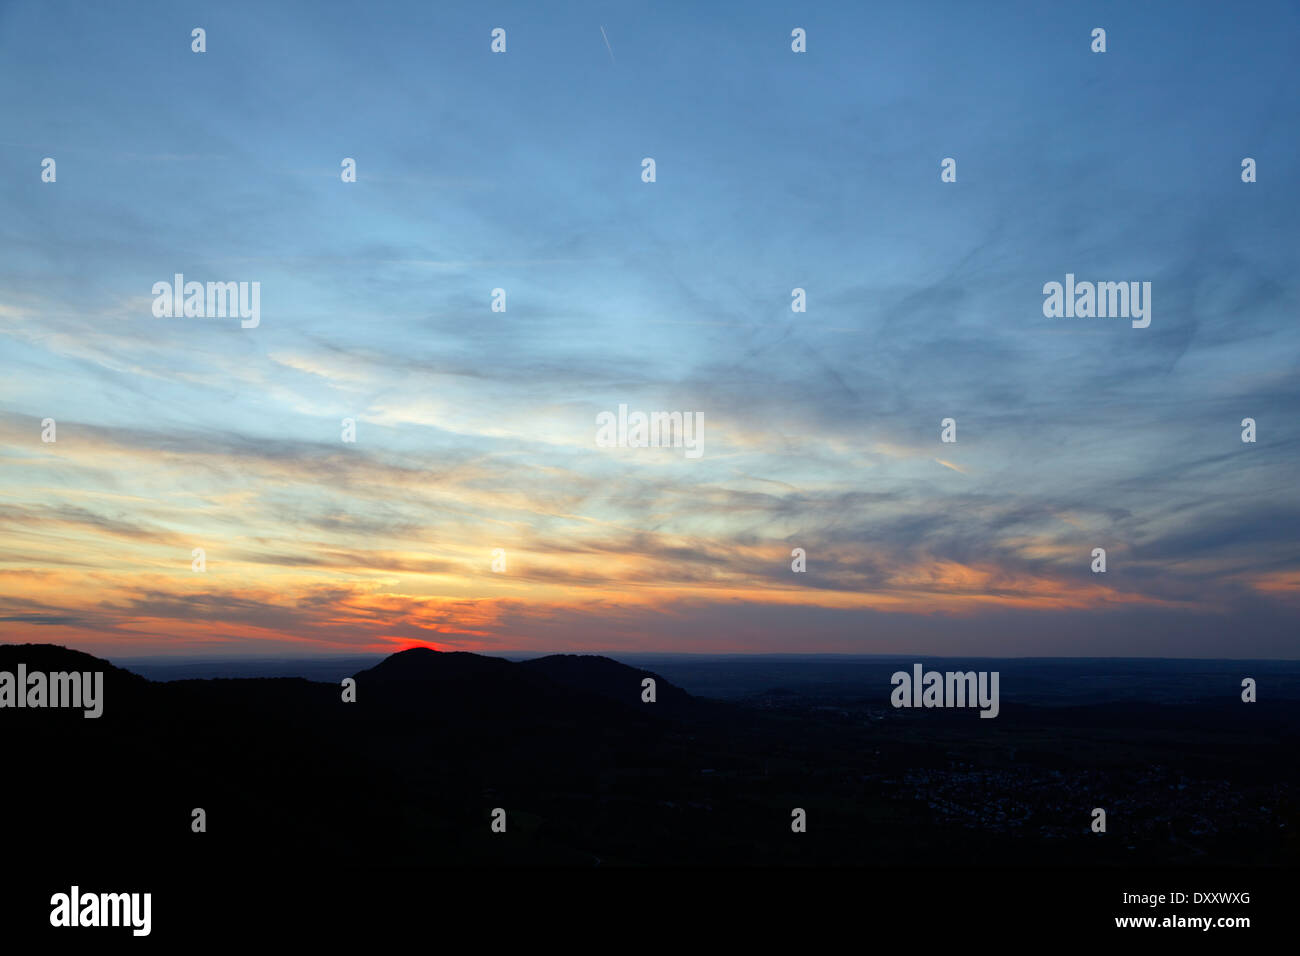 Germany, Baden-Wurttemberg, Swabian Alb (UNESCO Biosphere Reserve), near Neuffen, Sunset, viewpoint - Stock Image